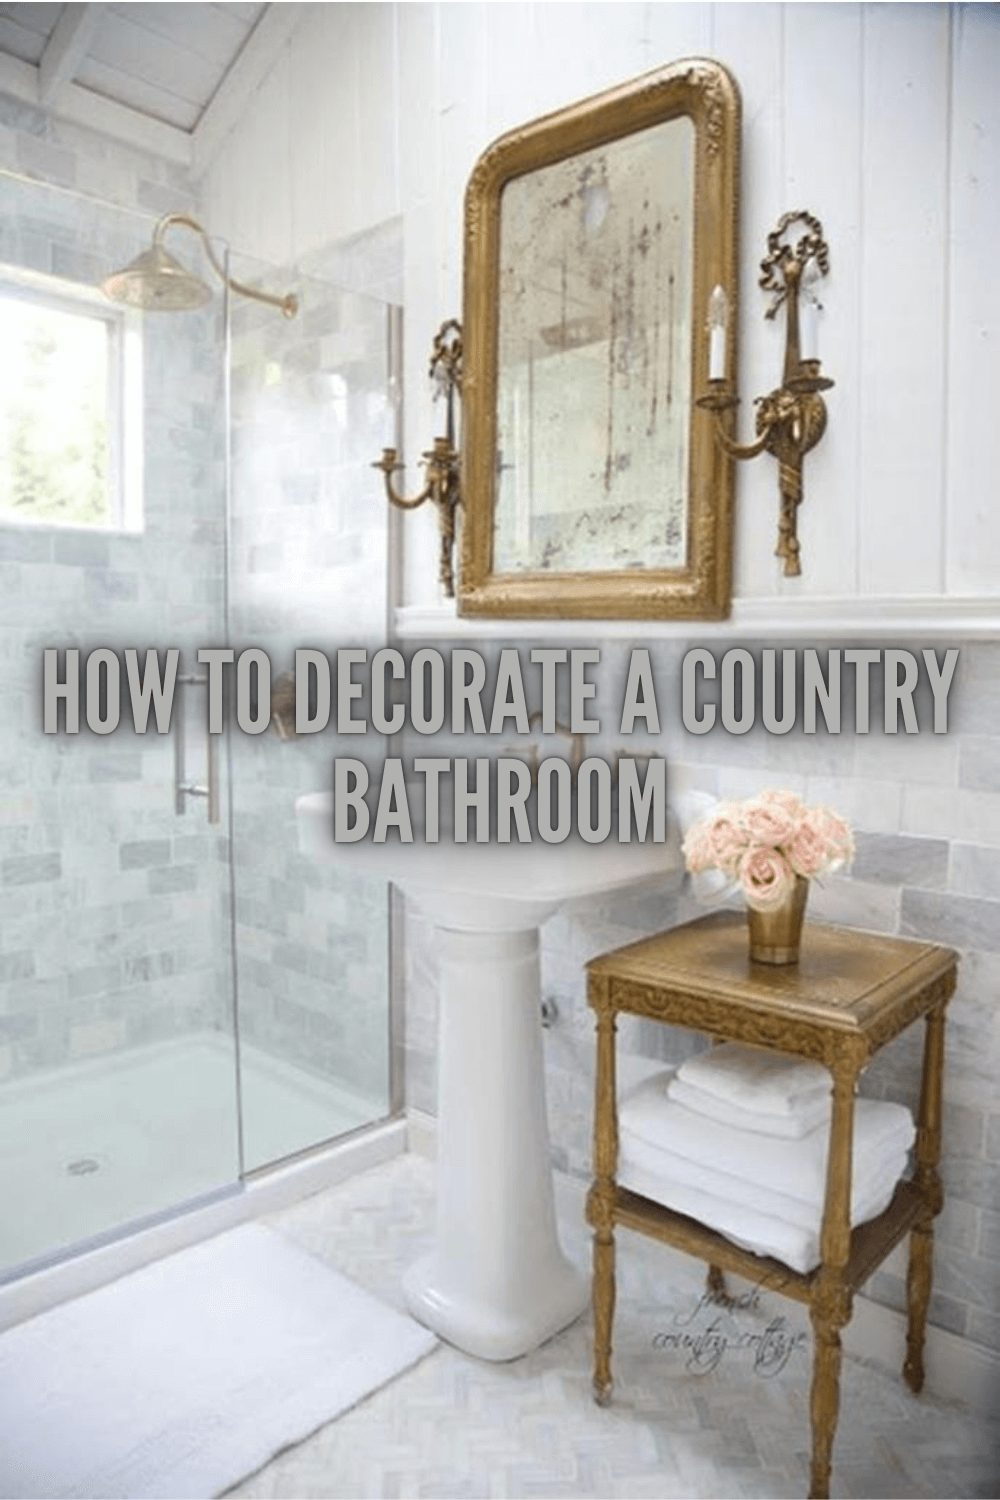 HOW TO DECORATE A COUNTRY BATHROOM